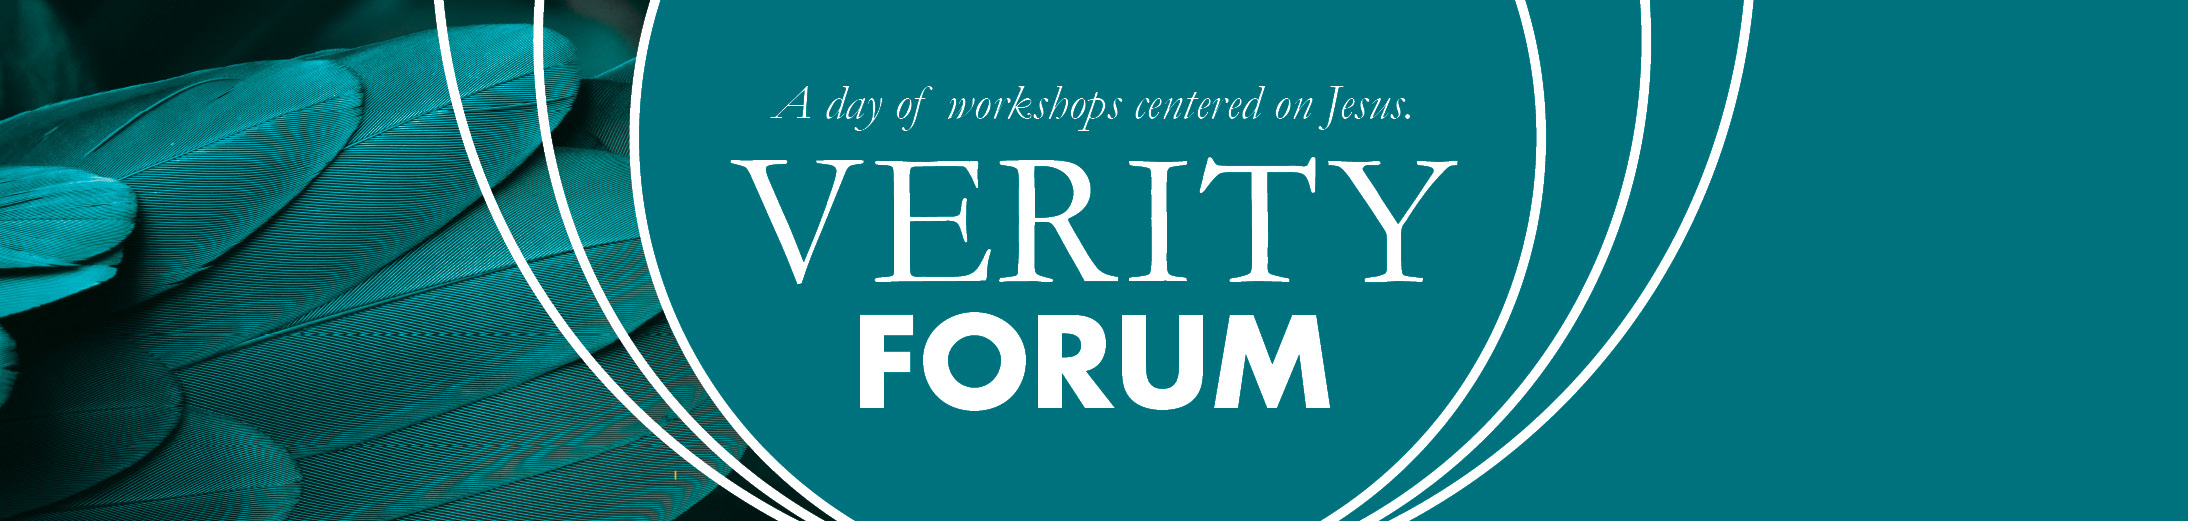 Verity Forum